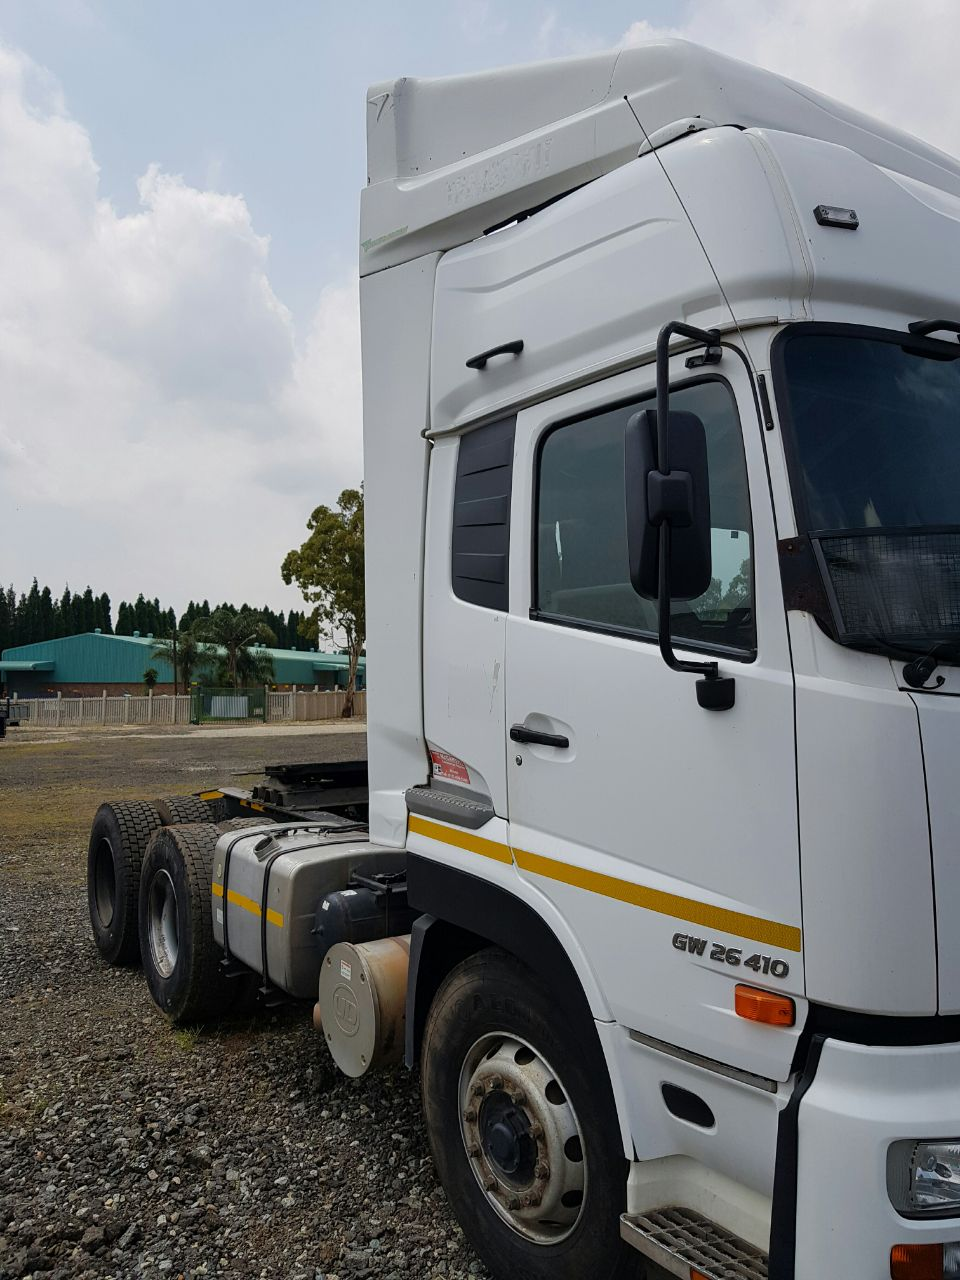 2013 Nissan GW26-410 truck tractor for sale